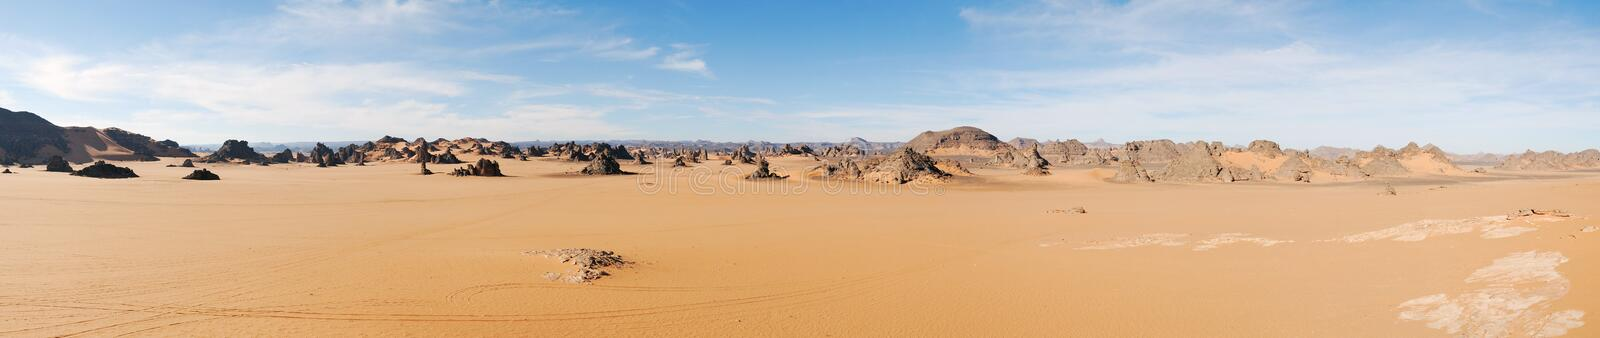 Sand dunes in Sahara desert panorama, Libya royalty free stock photo